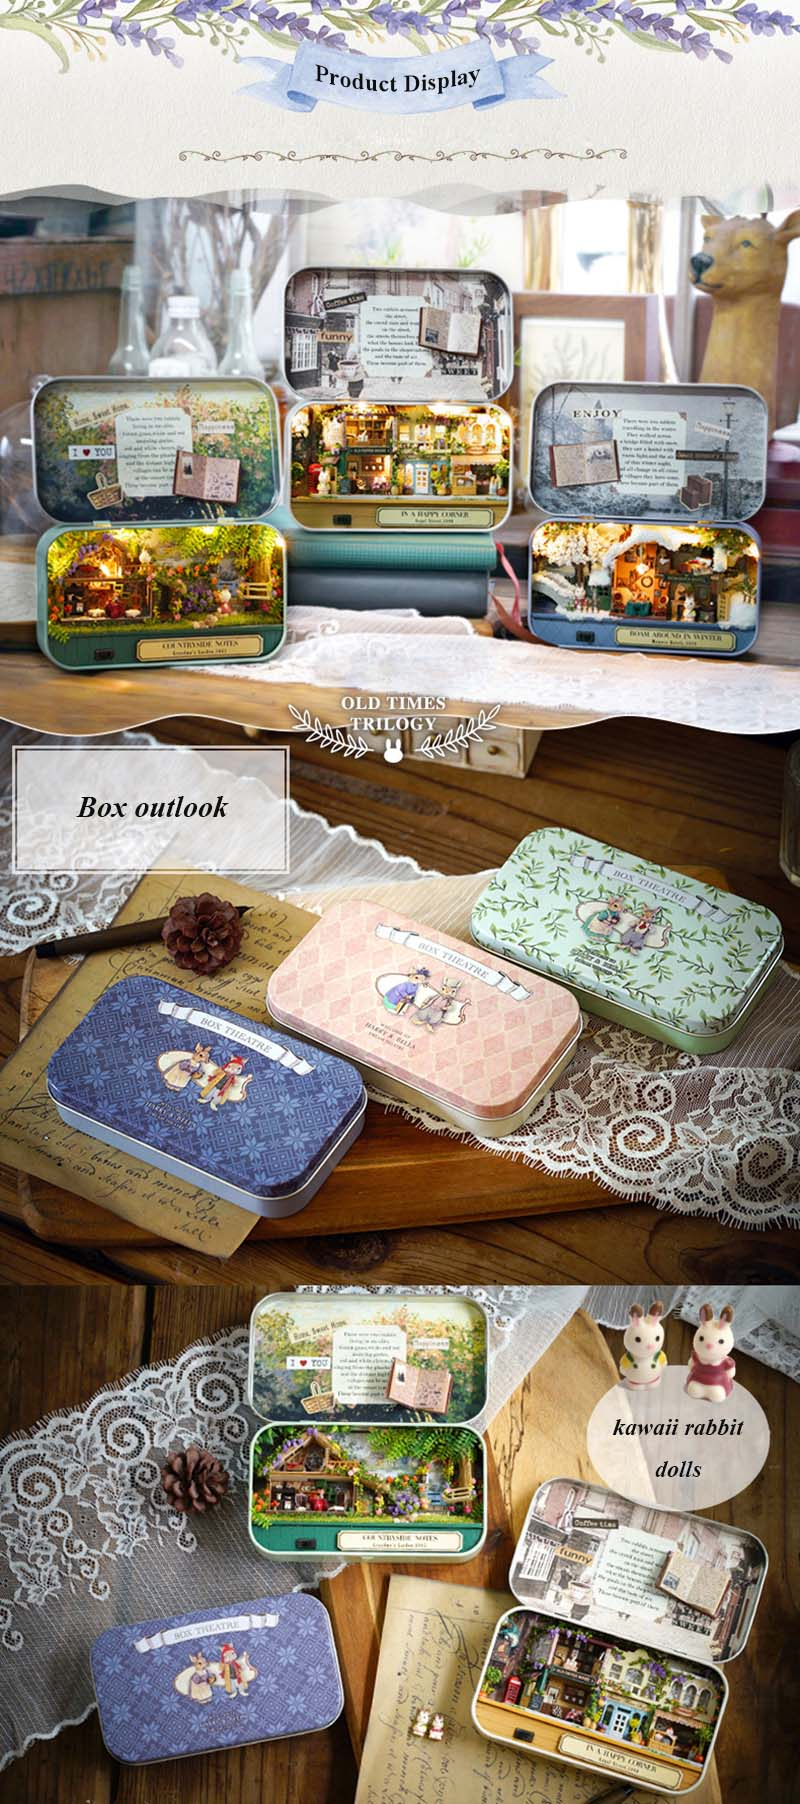 In A Happy Corner 3D Wooden DIY Handmade Box Theatre Dollhouse Miniature Box Cute Mini Doll House Assemble Kits Gift Toys (3)